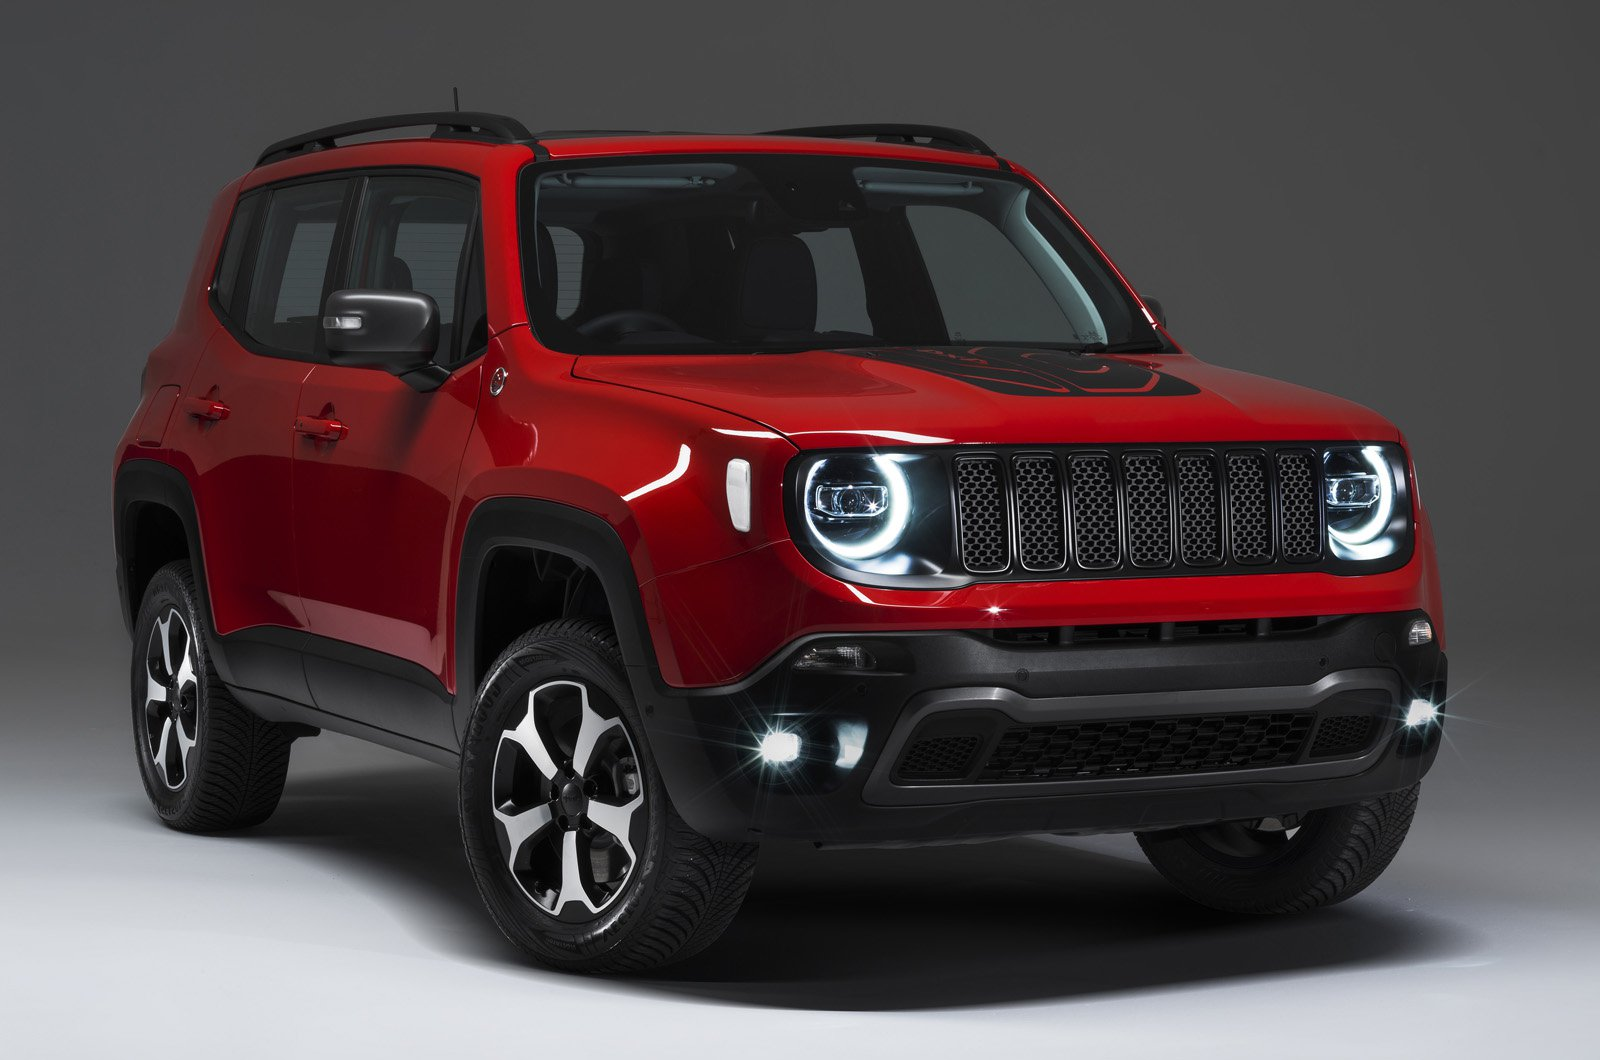 Jeep Renegade front studio